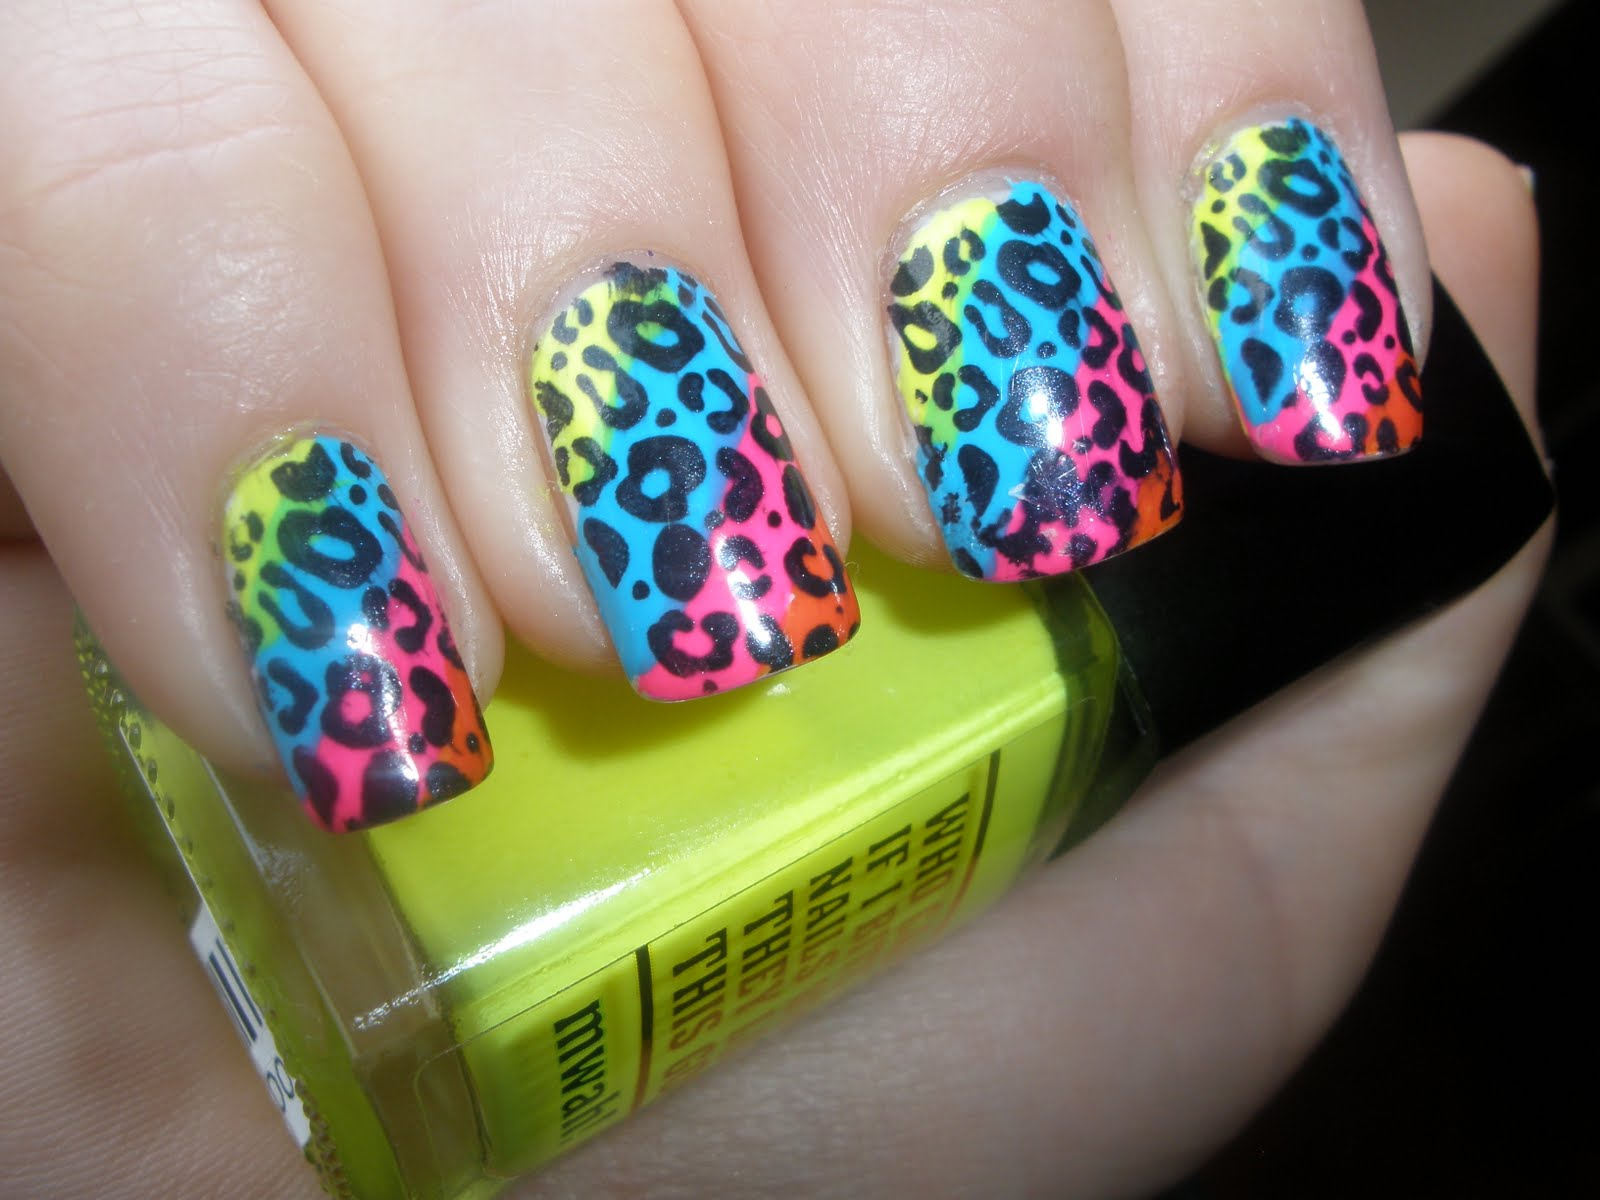 Cheetah Nail Designs - Pccala